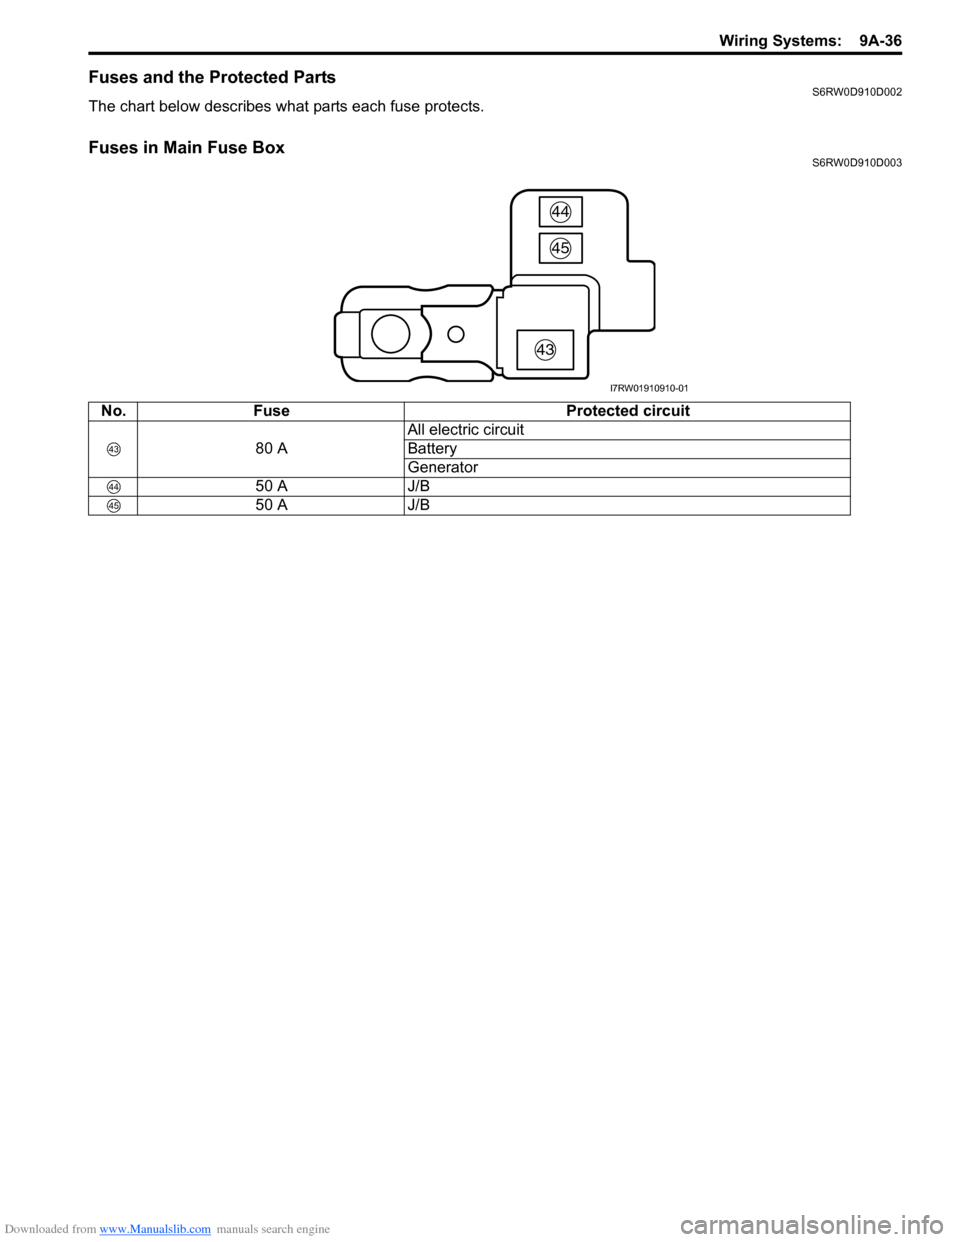 Fuses Suzuki Sx4 2006 1g Service Workshop Manual Electric Wiring Diagram For G 50a Page 1203